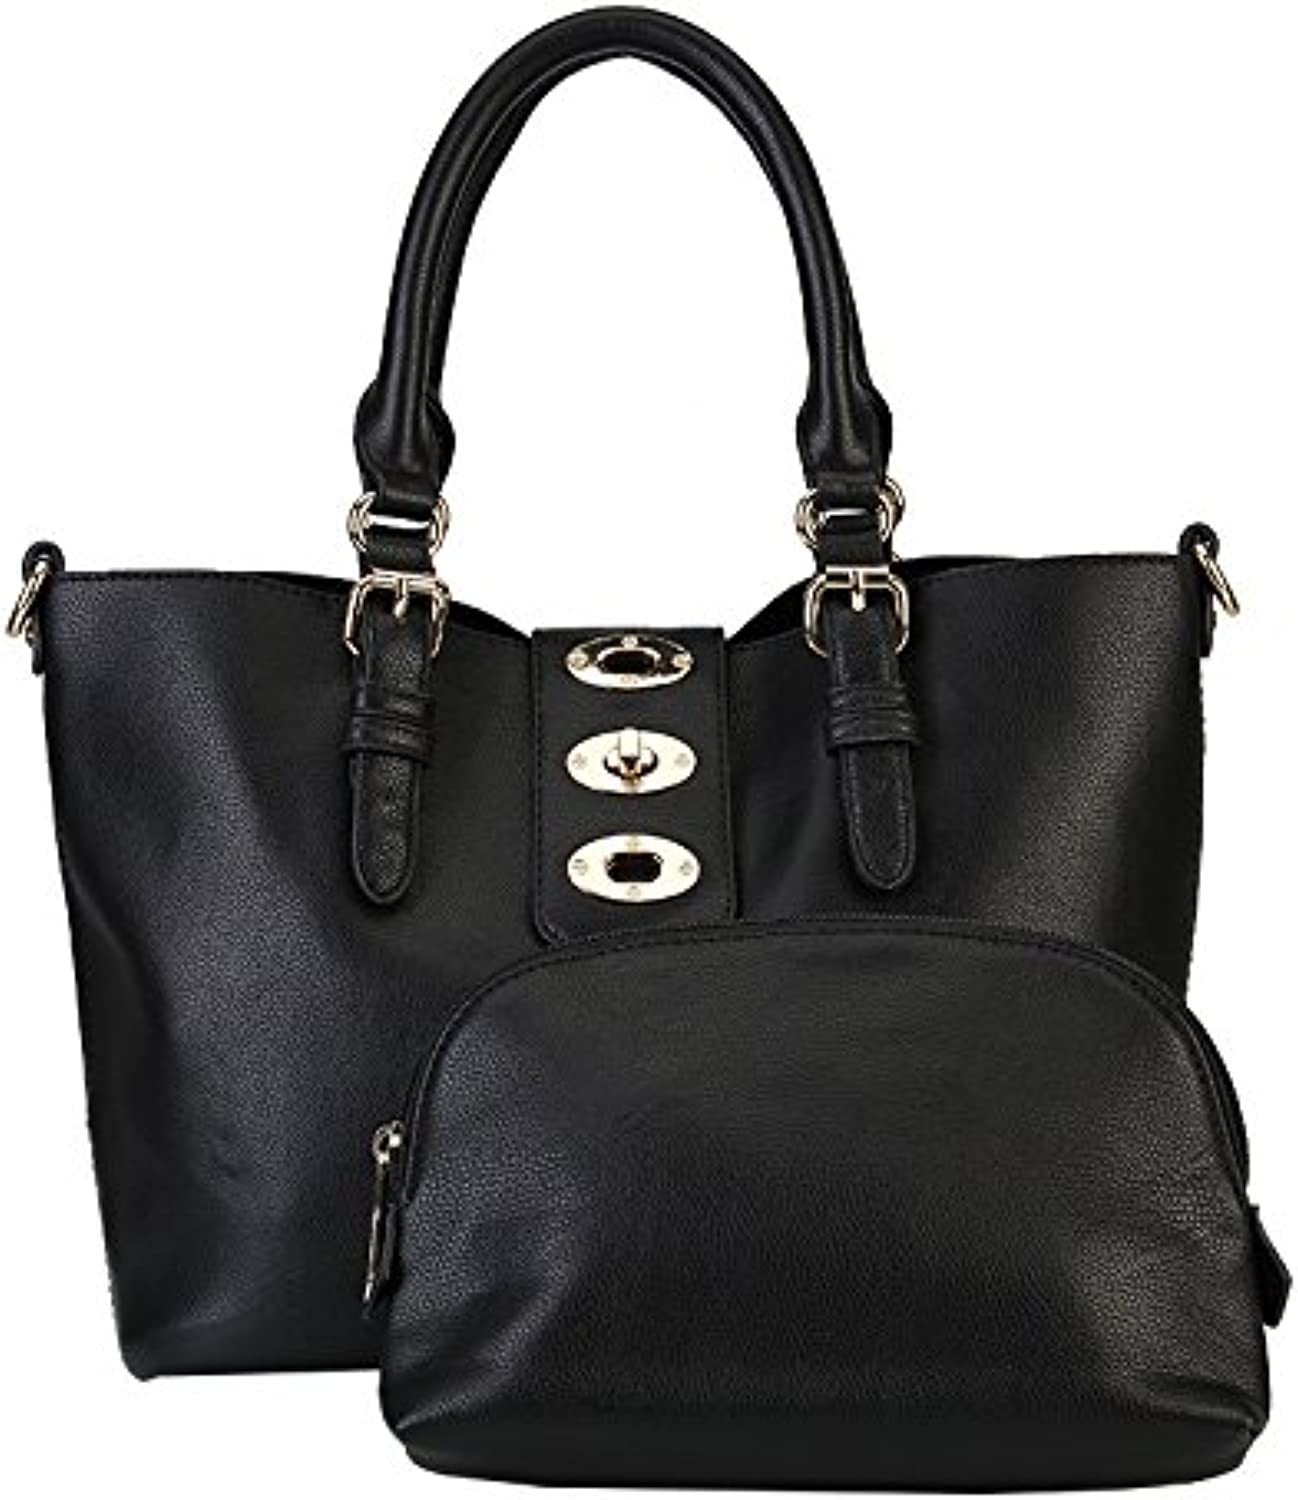 Fraless Collection Fliplock Flap Closure Bag in Bag Design Hobo Handbag